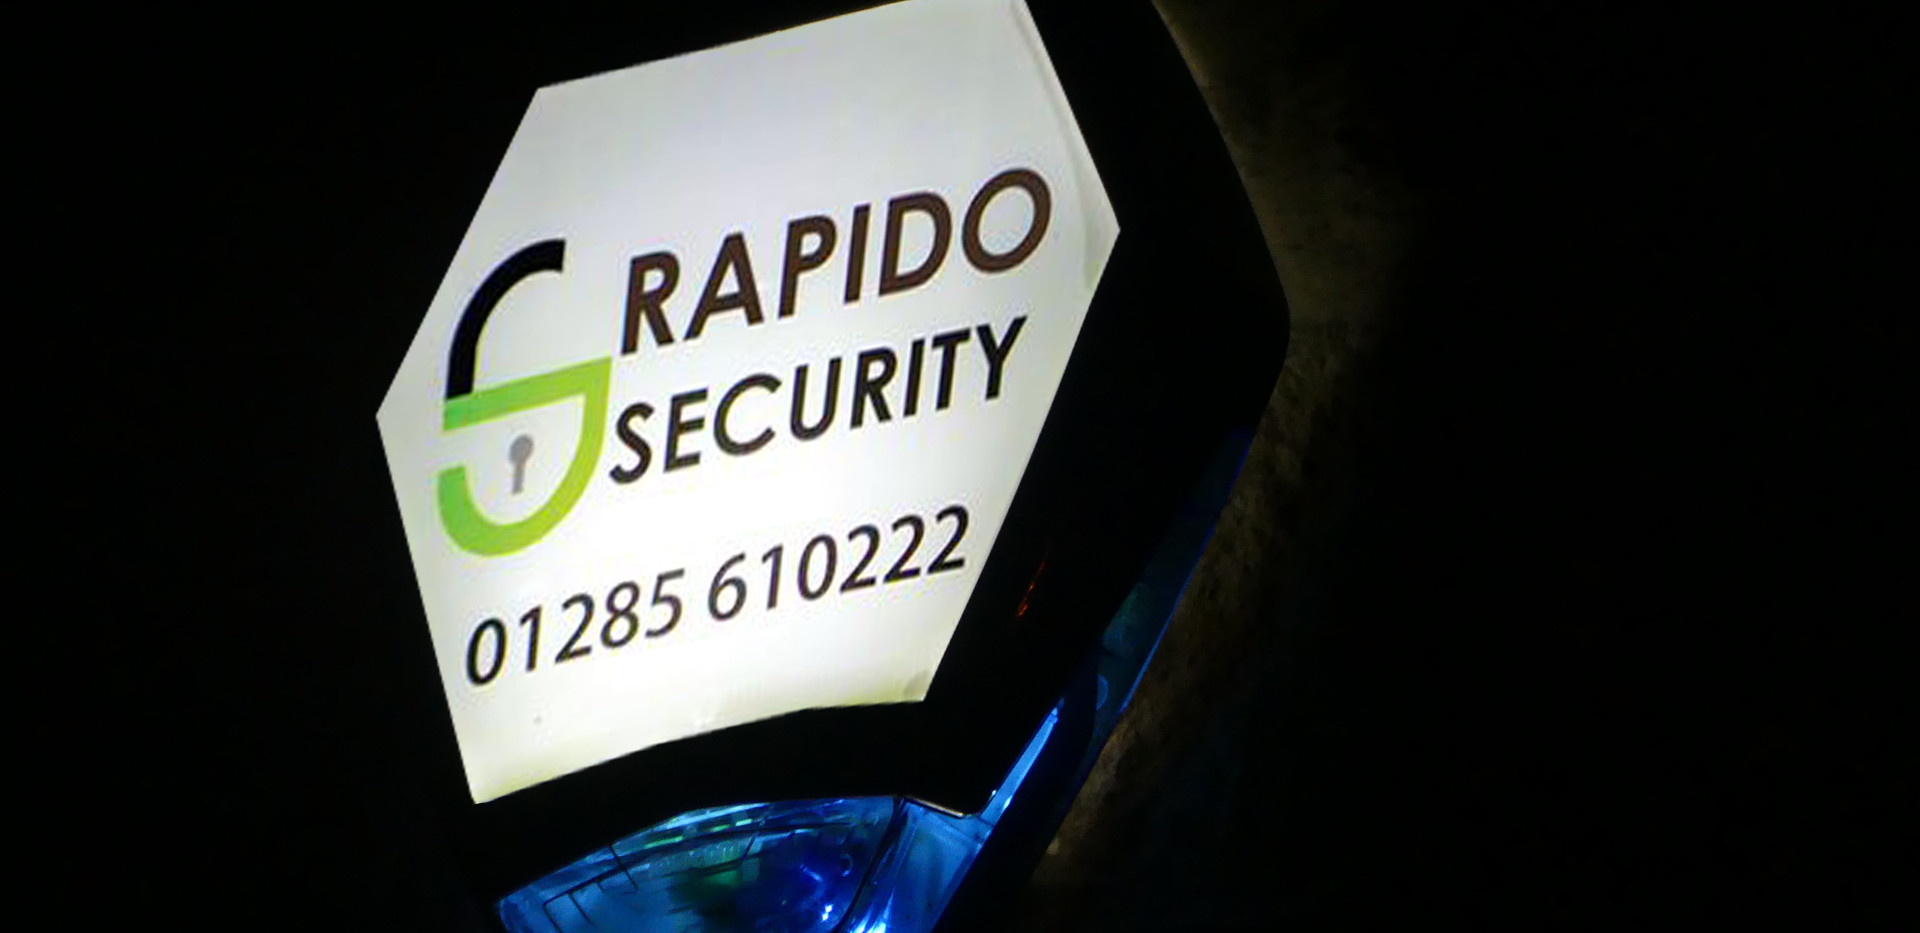 RAPIDO SECURITY CIRENCESTER INTRUER ALAR